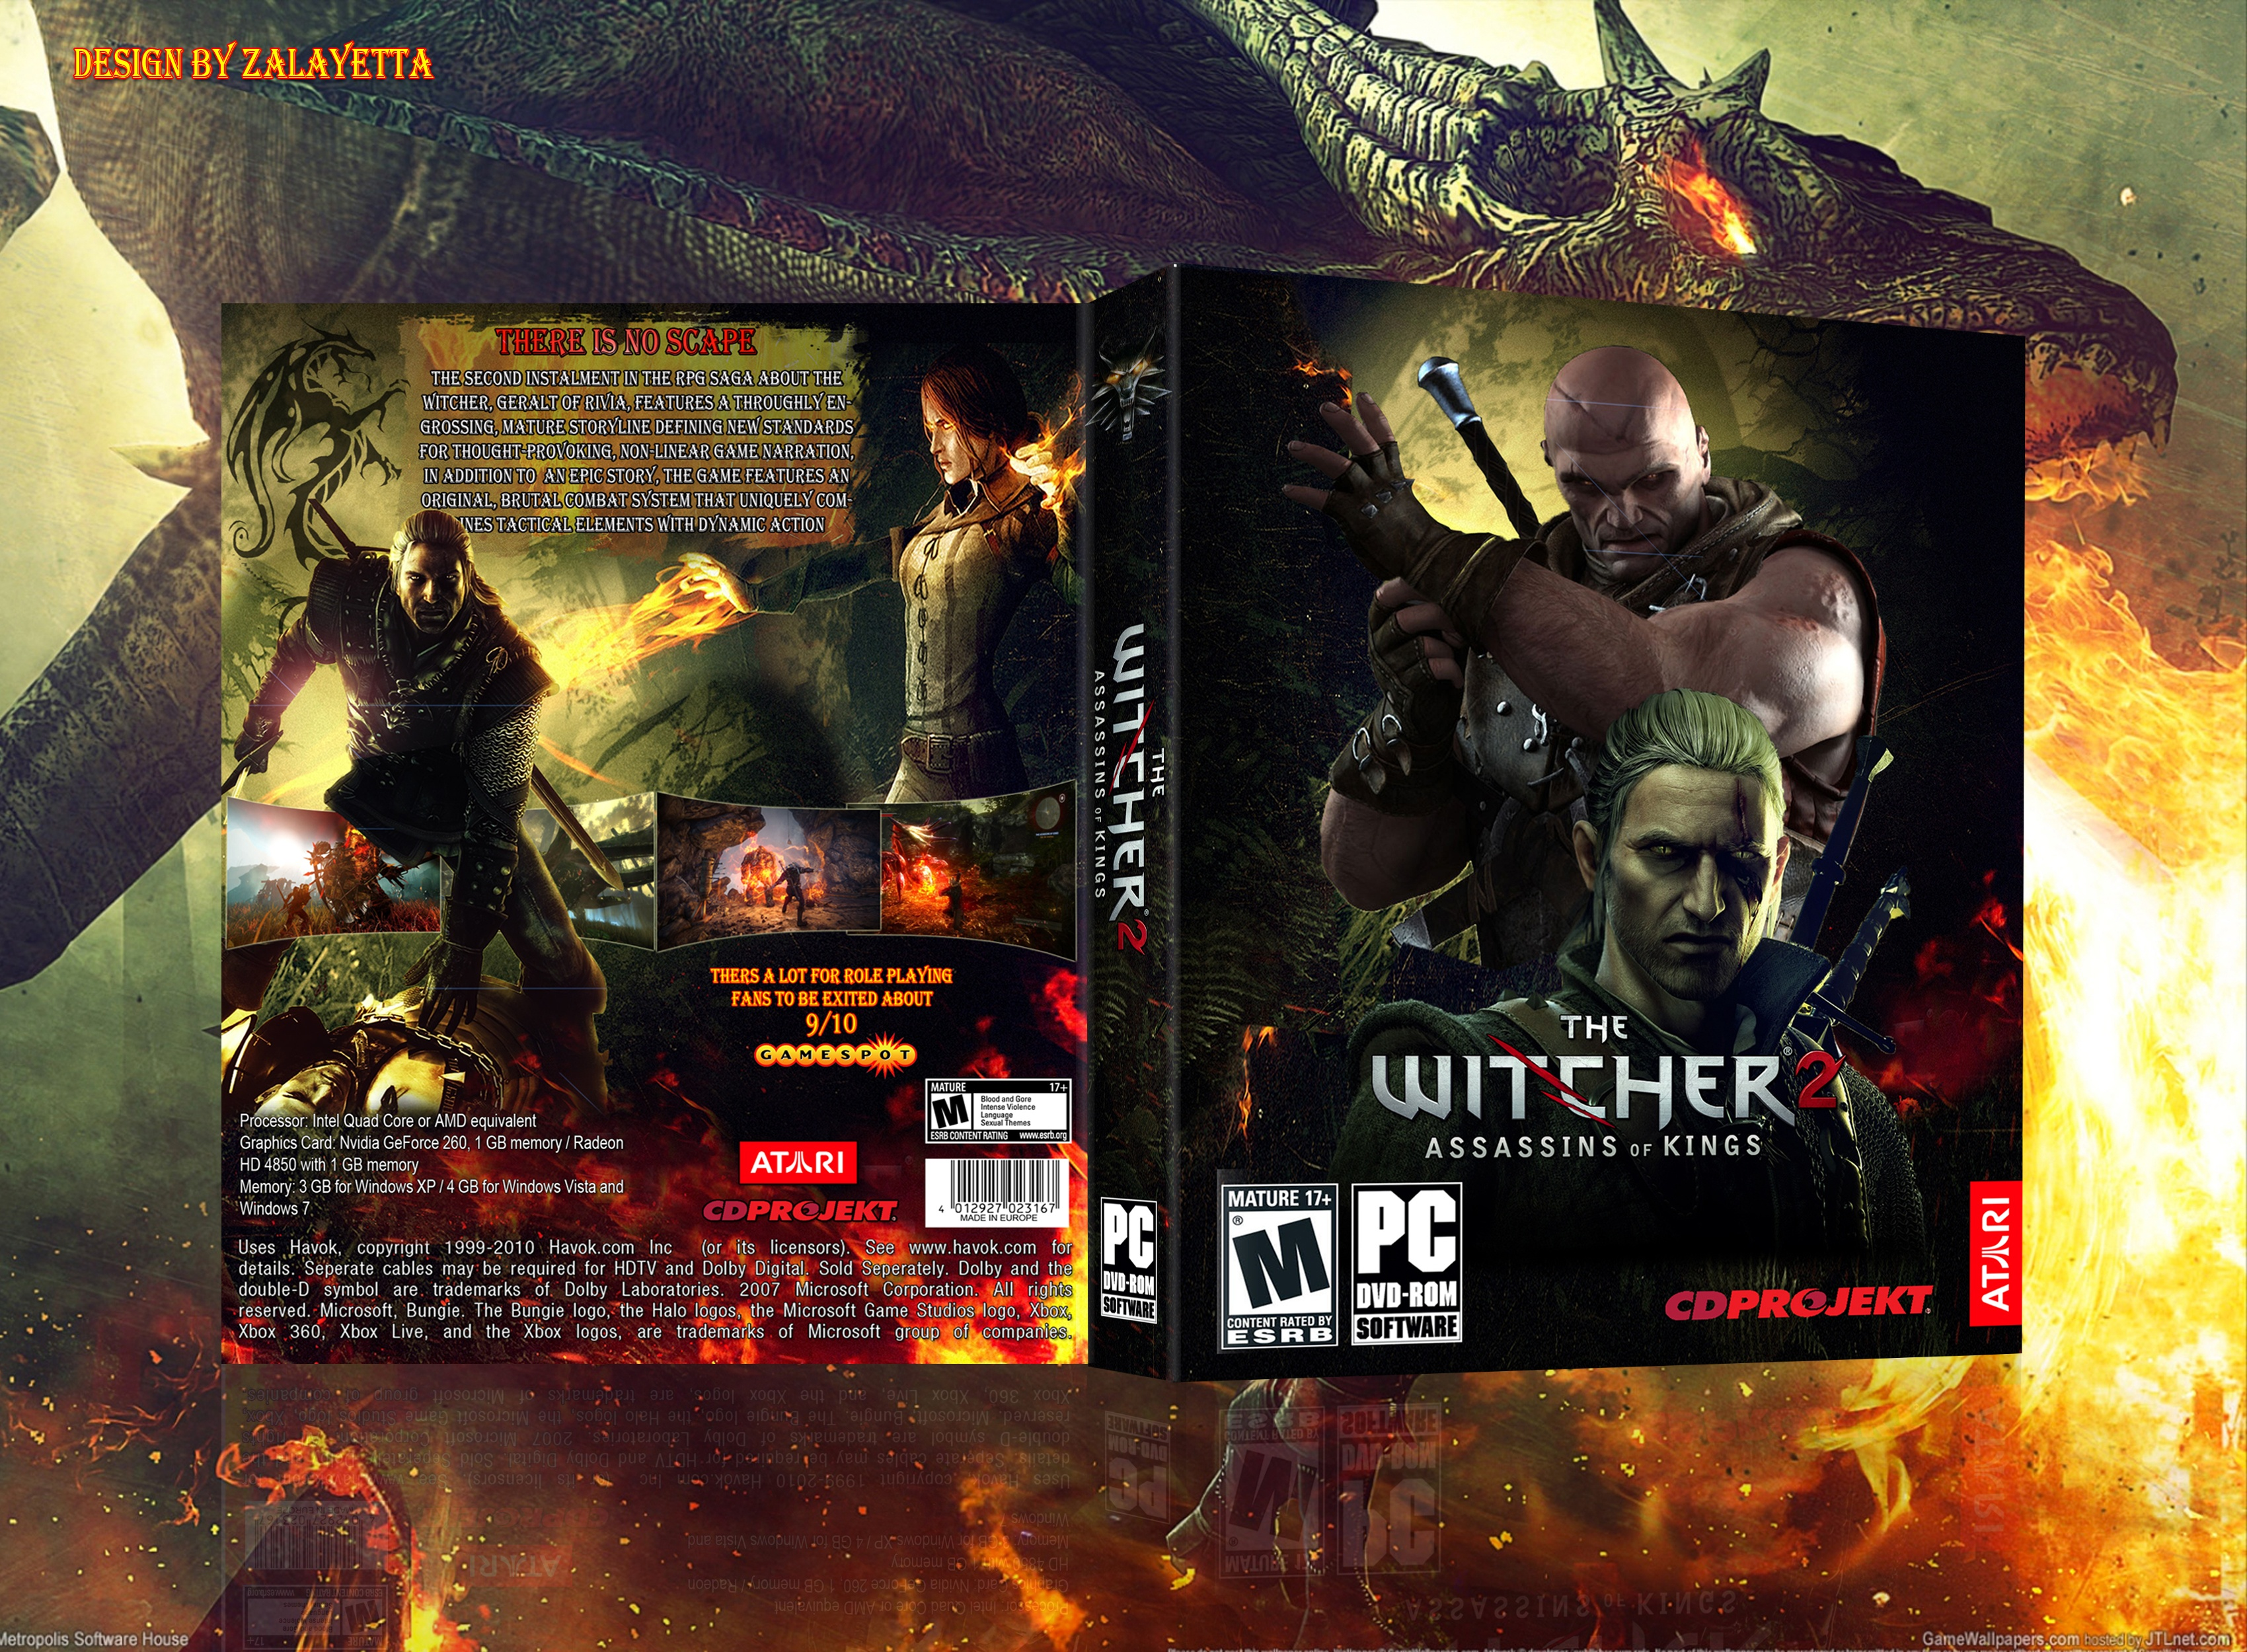 The Witcher 2: Assassins of Kings box cover